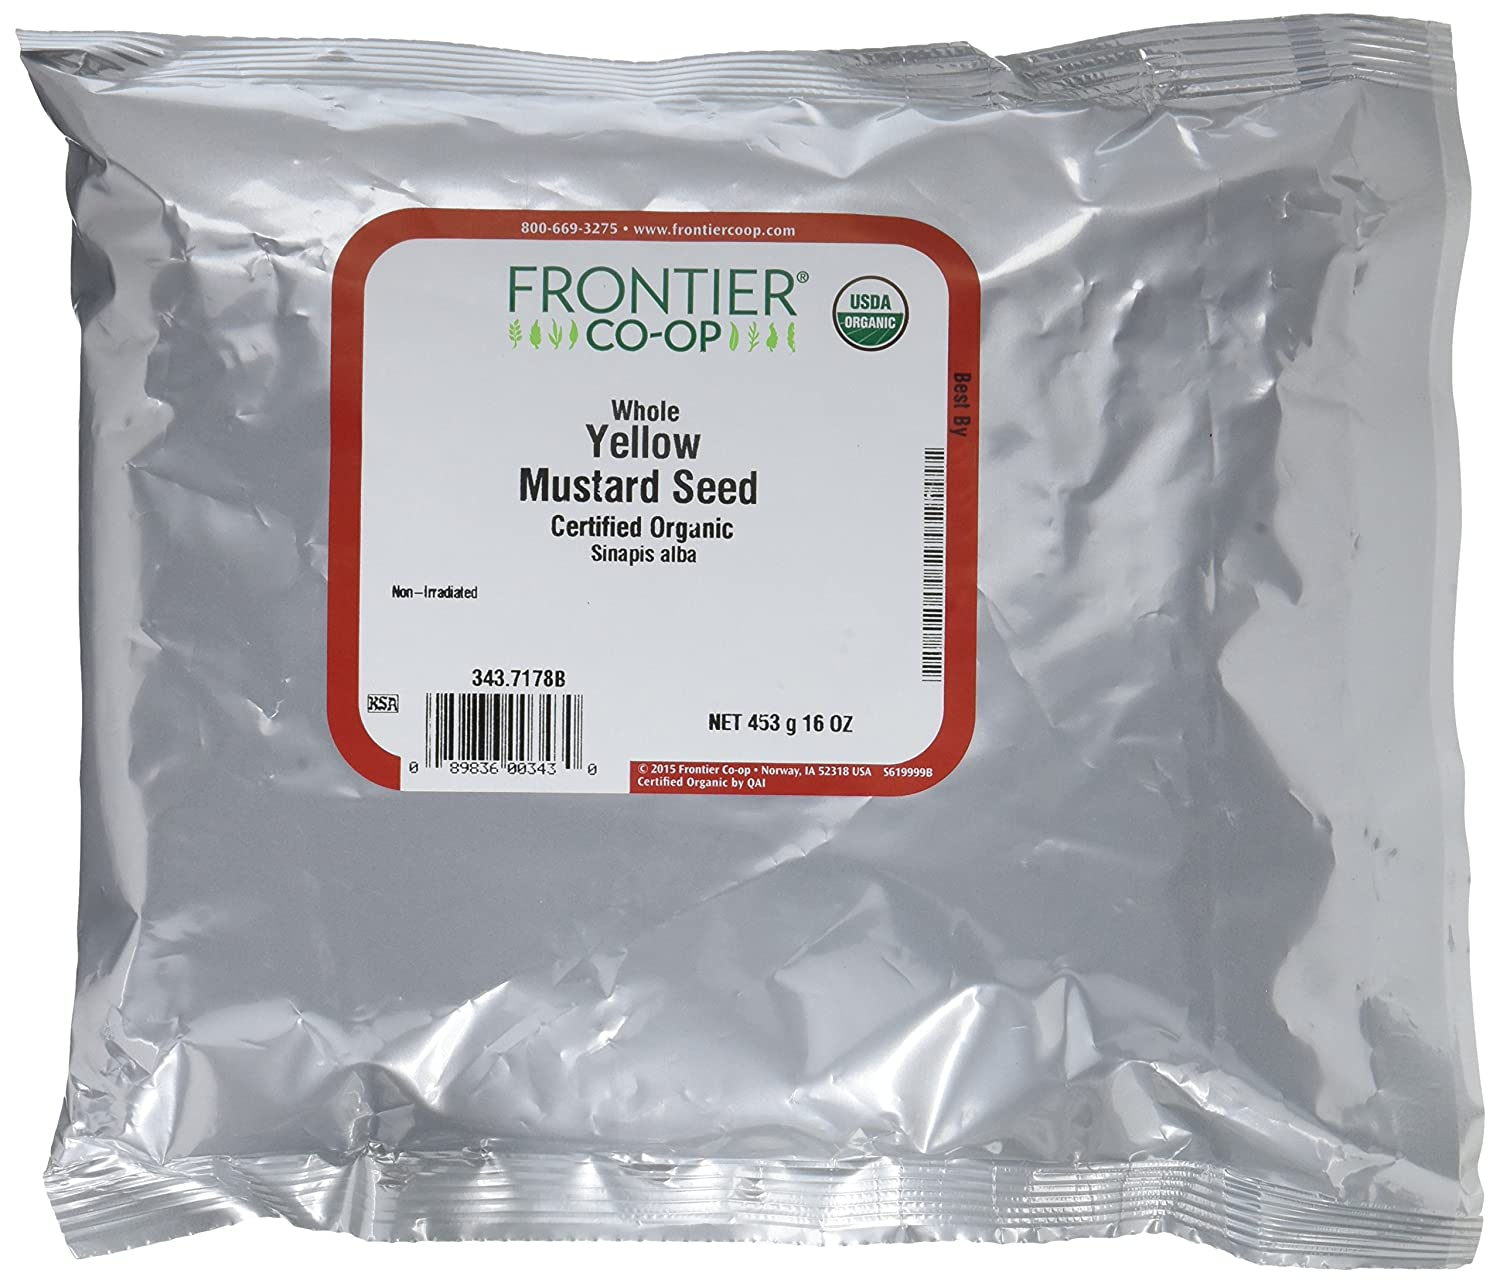 Amazon : Frontier Coopanic Yellow Mustard Seed, Whole, 1 Pound  Bulk Bag (pack Of 2) : Mustard Spices And Herbs : Grocery & Gourmet Food